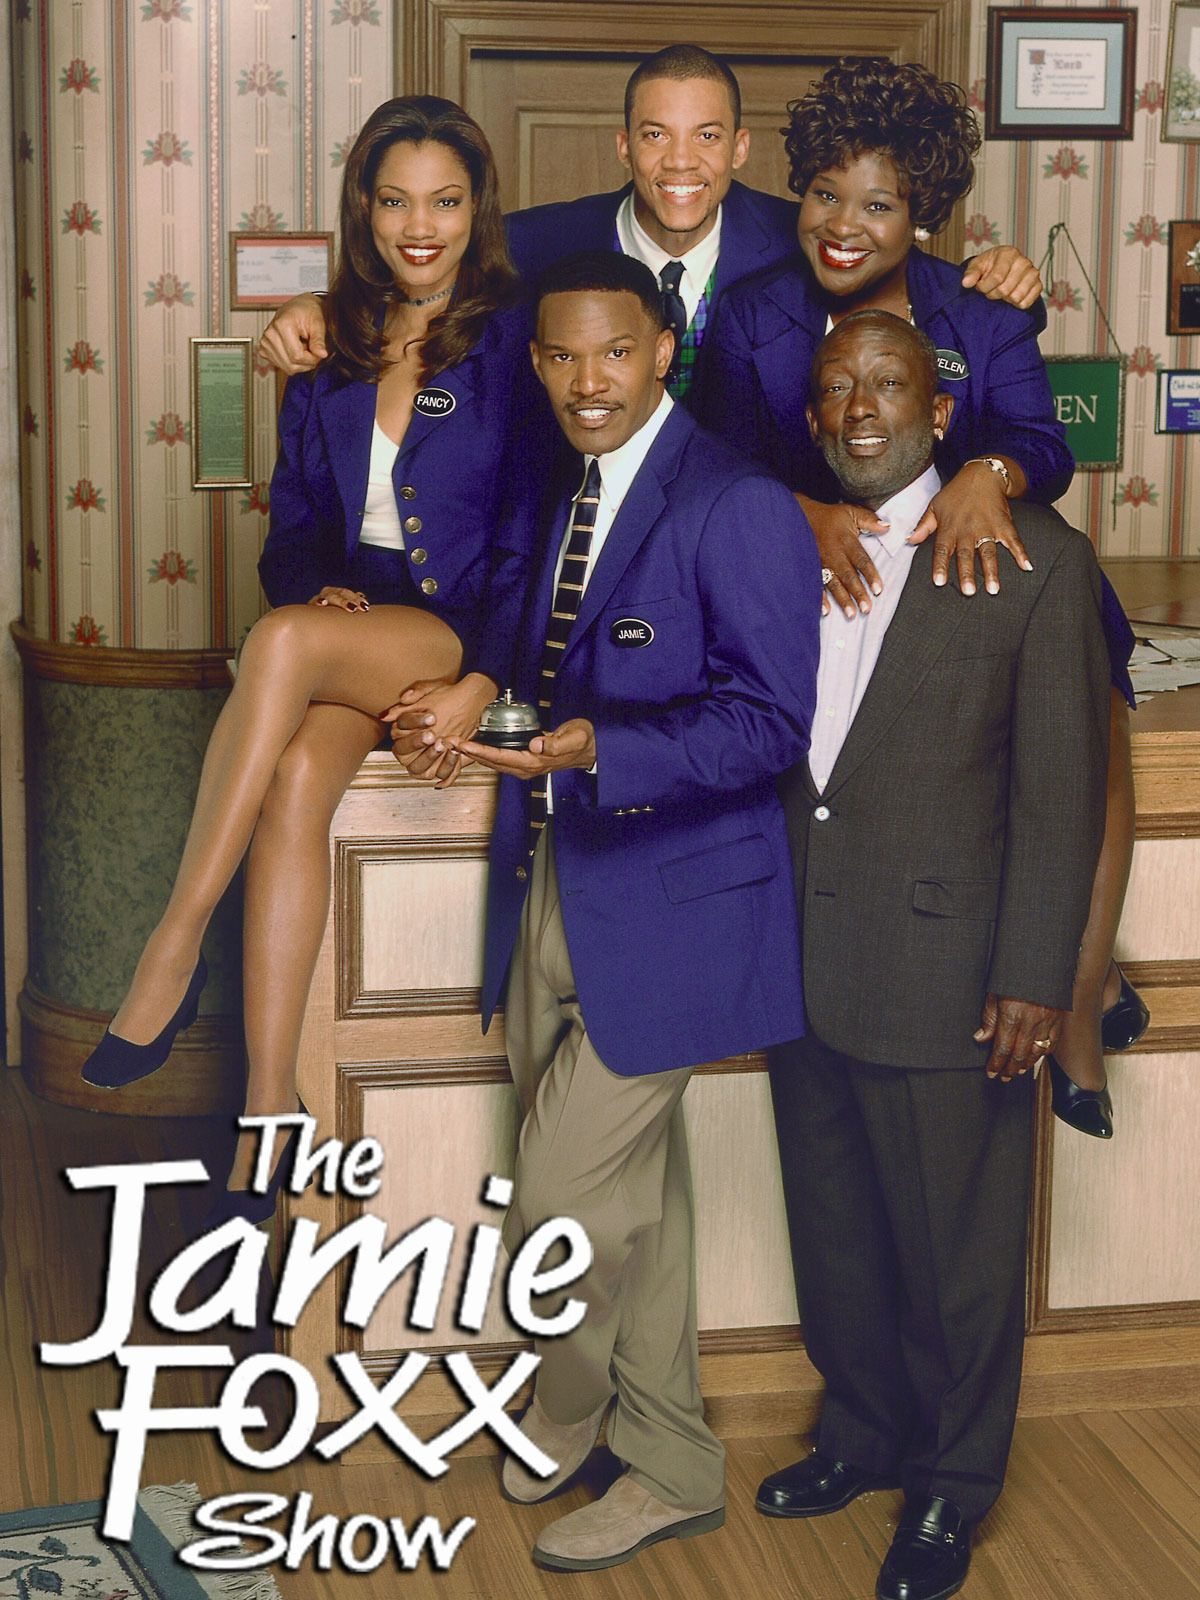 Nr Not Rated Comedy The Jamie Foxx Show 1996 2001 Black Tv